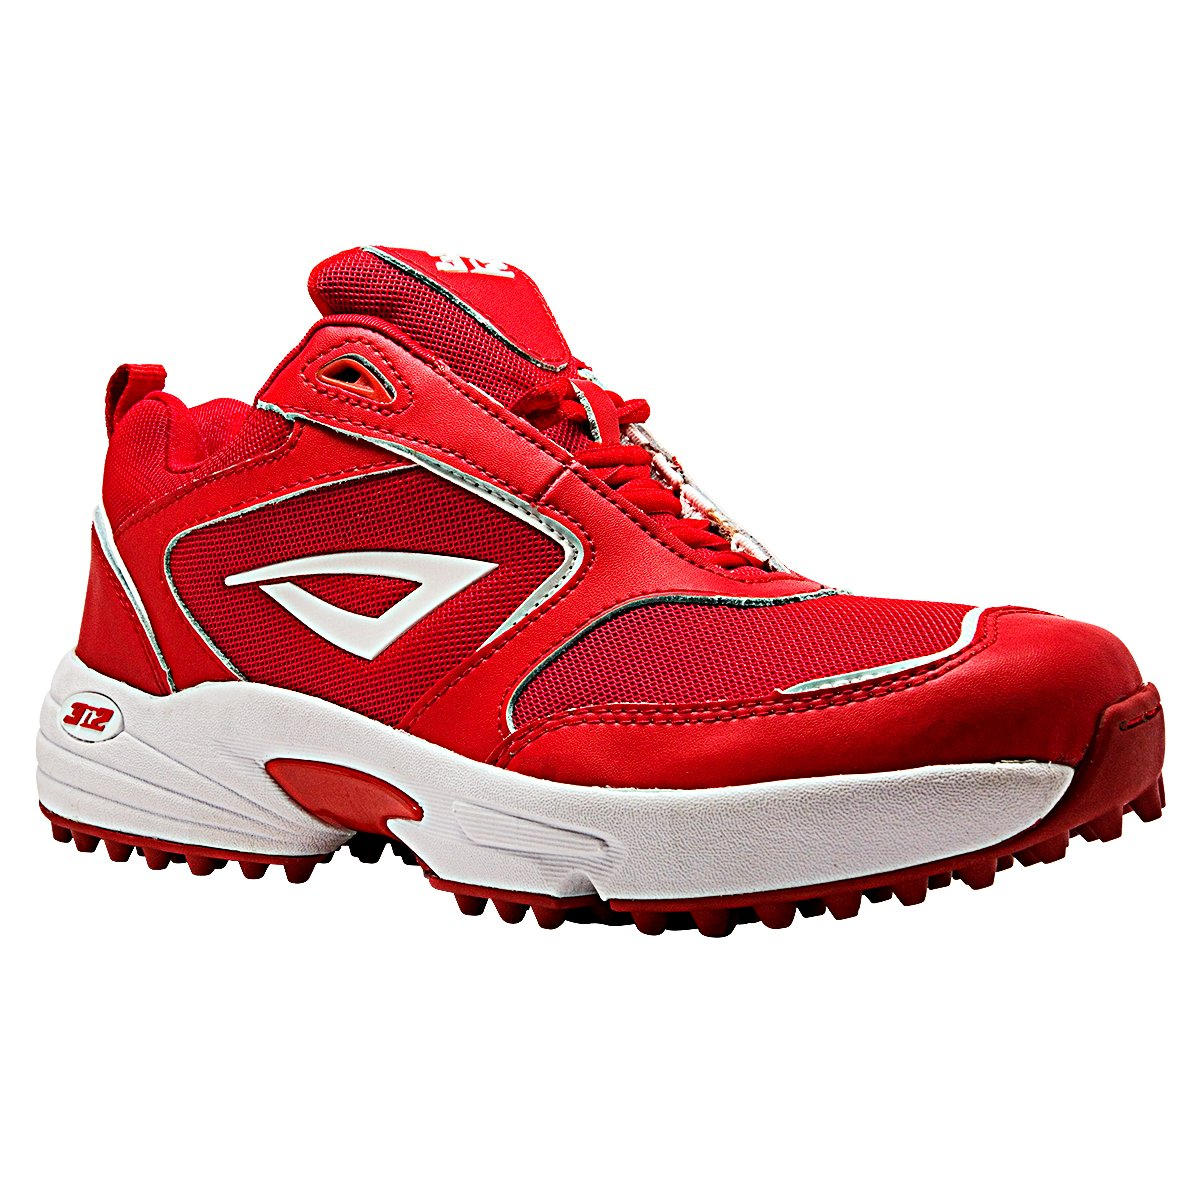 3N2 Mofo Turf Trainer 9.0, Red, 9